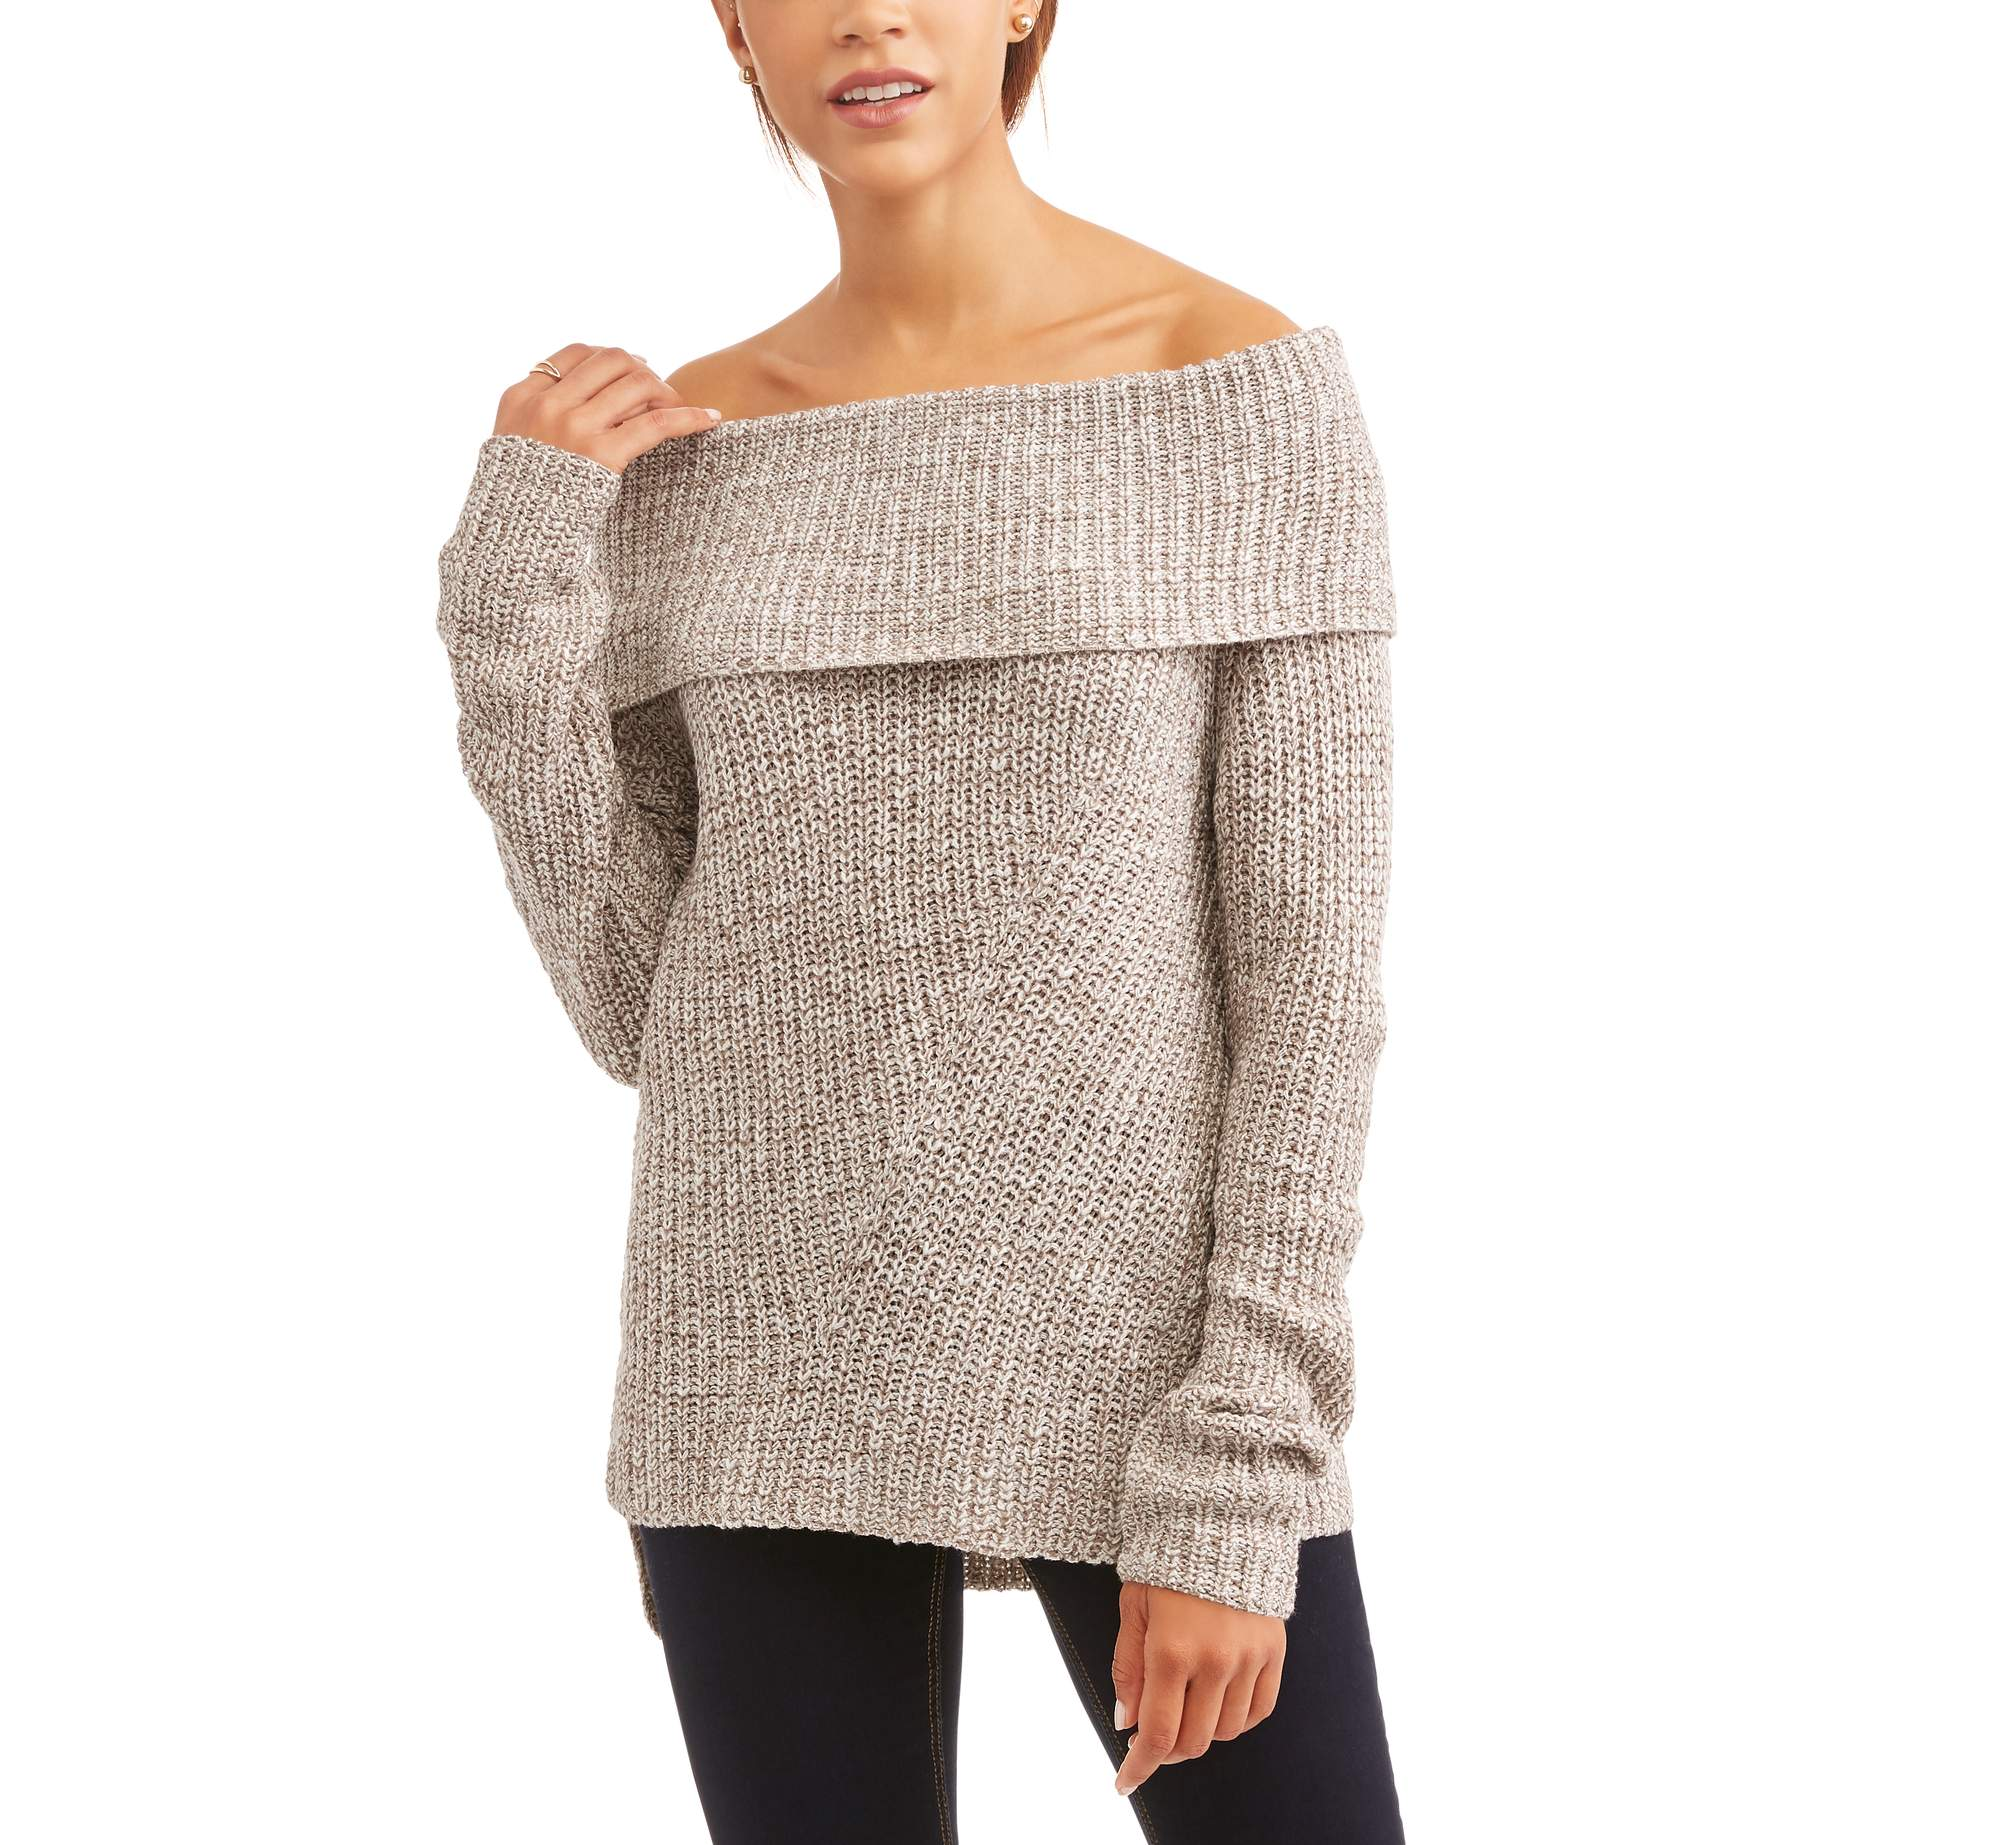 Generic Faded Glory Women's Marilyn Off the Shoulder Sweater